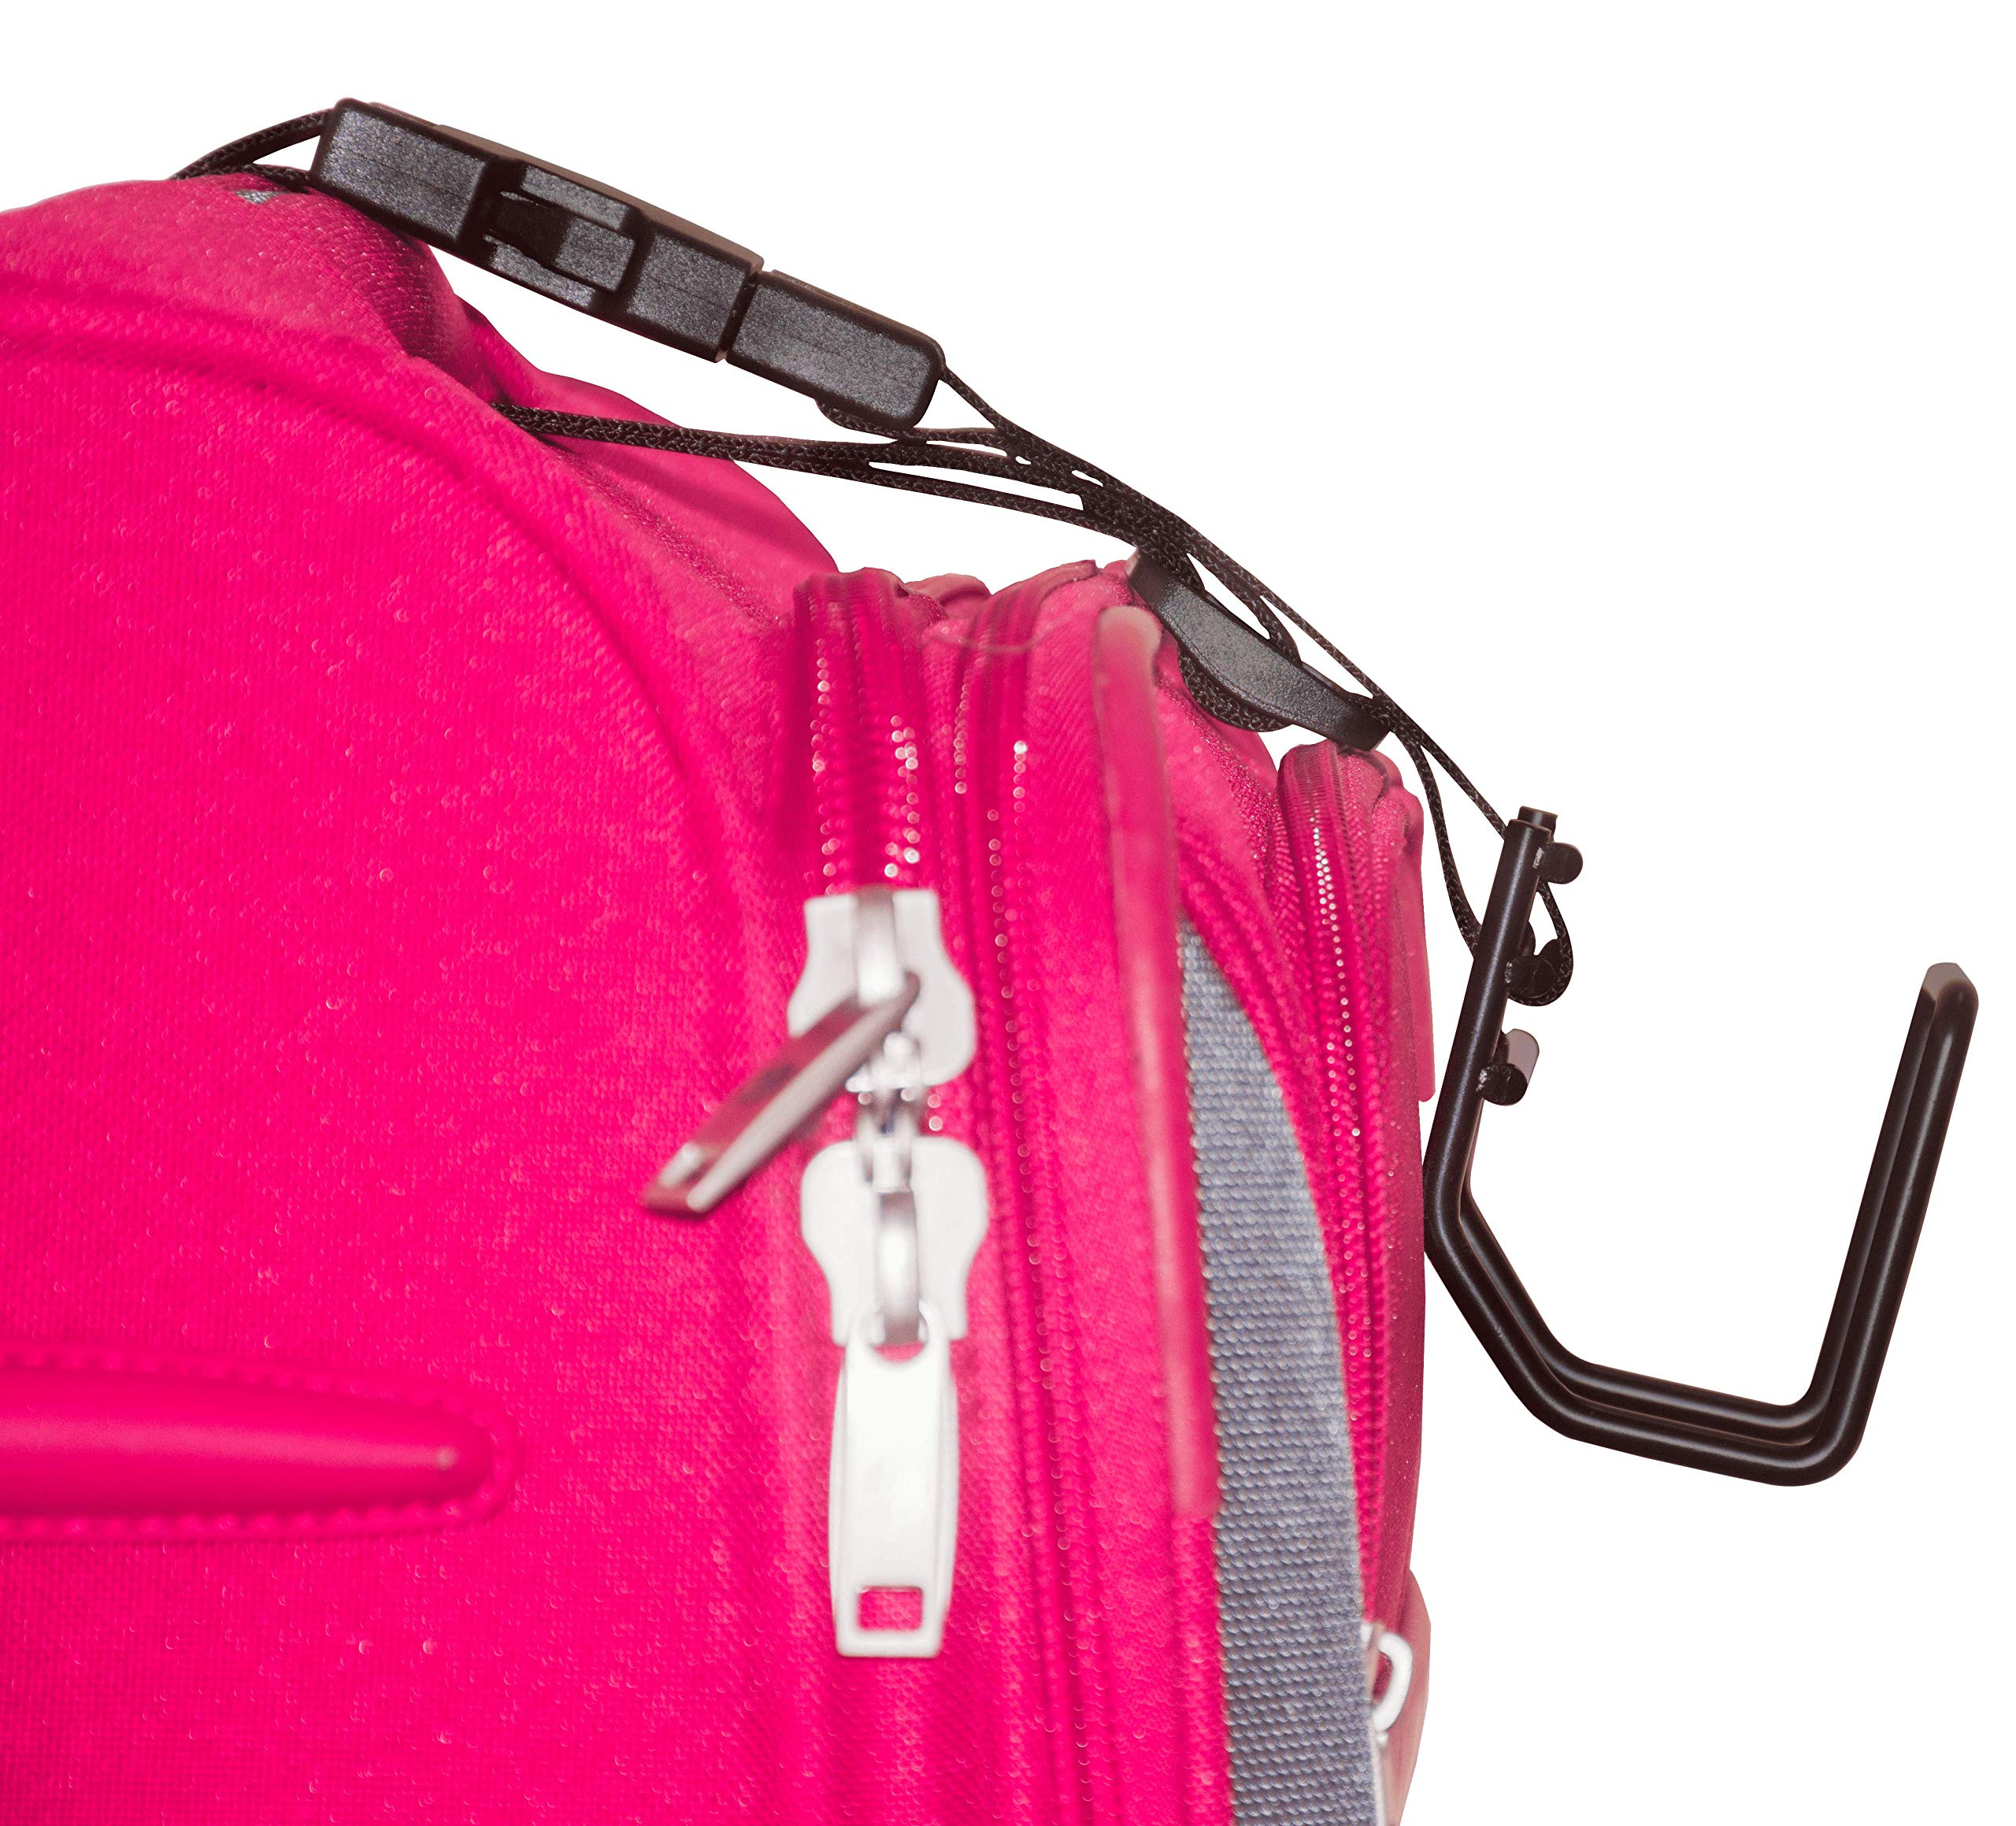 Add A Bag with J-Hook by Global Living (USA Seller)